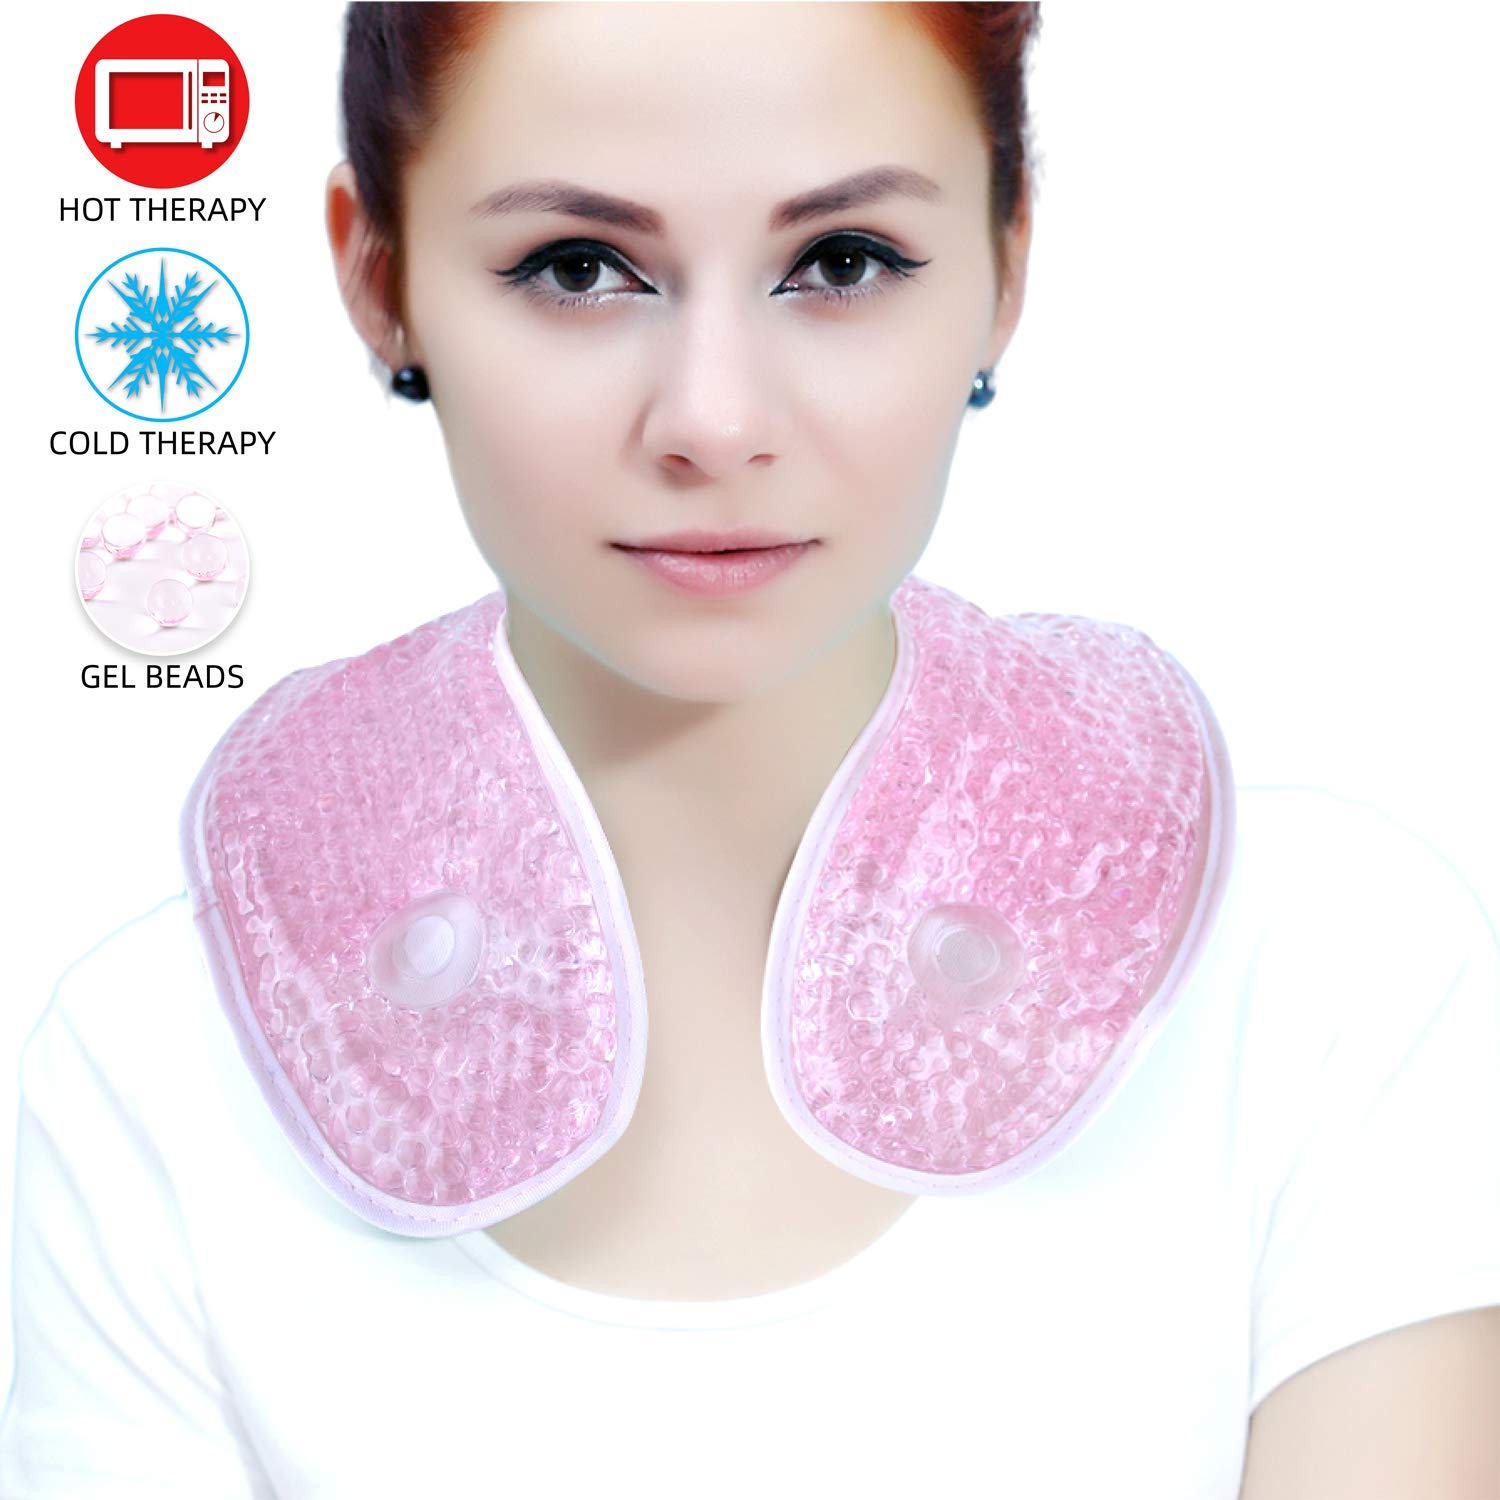 Ice Packs for Neck Shoulder with Soft Plush Backing,Cooling Neck Wrap with Reusable Gel Beads, Hot/Cold Therapy Packs for Neck Pain Relief,Sore Shoulder and Stiff Muscles [Pink]